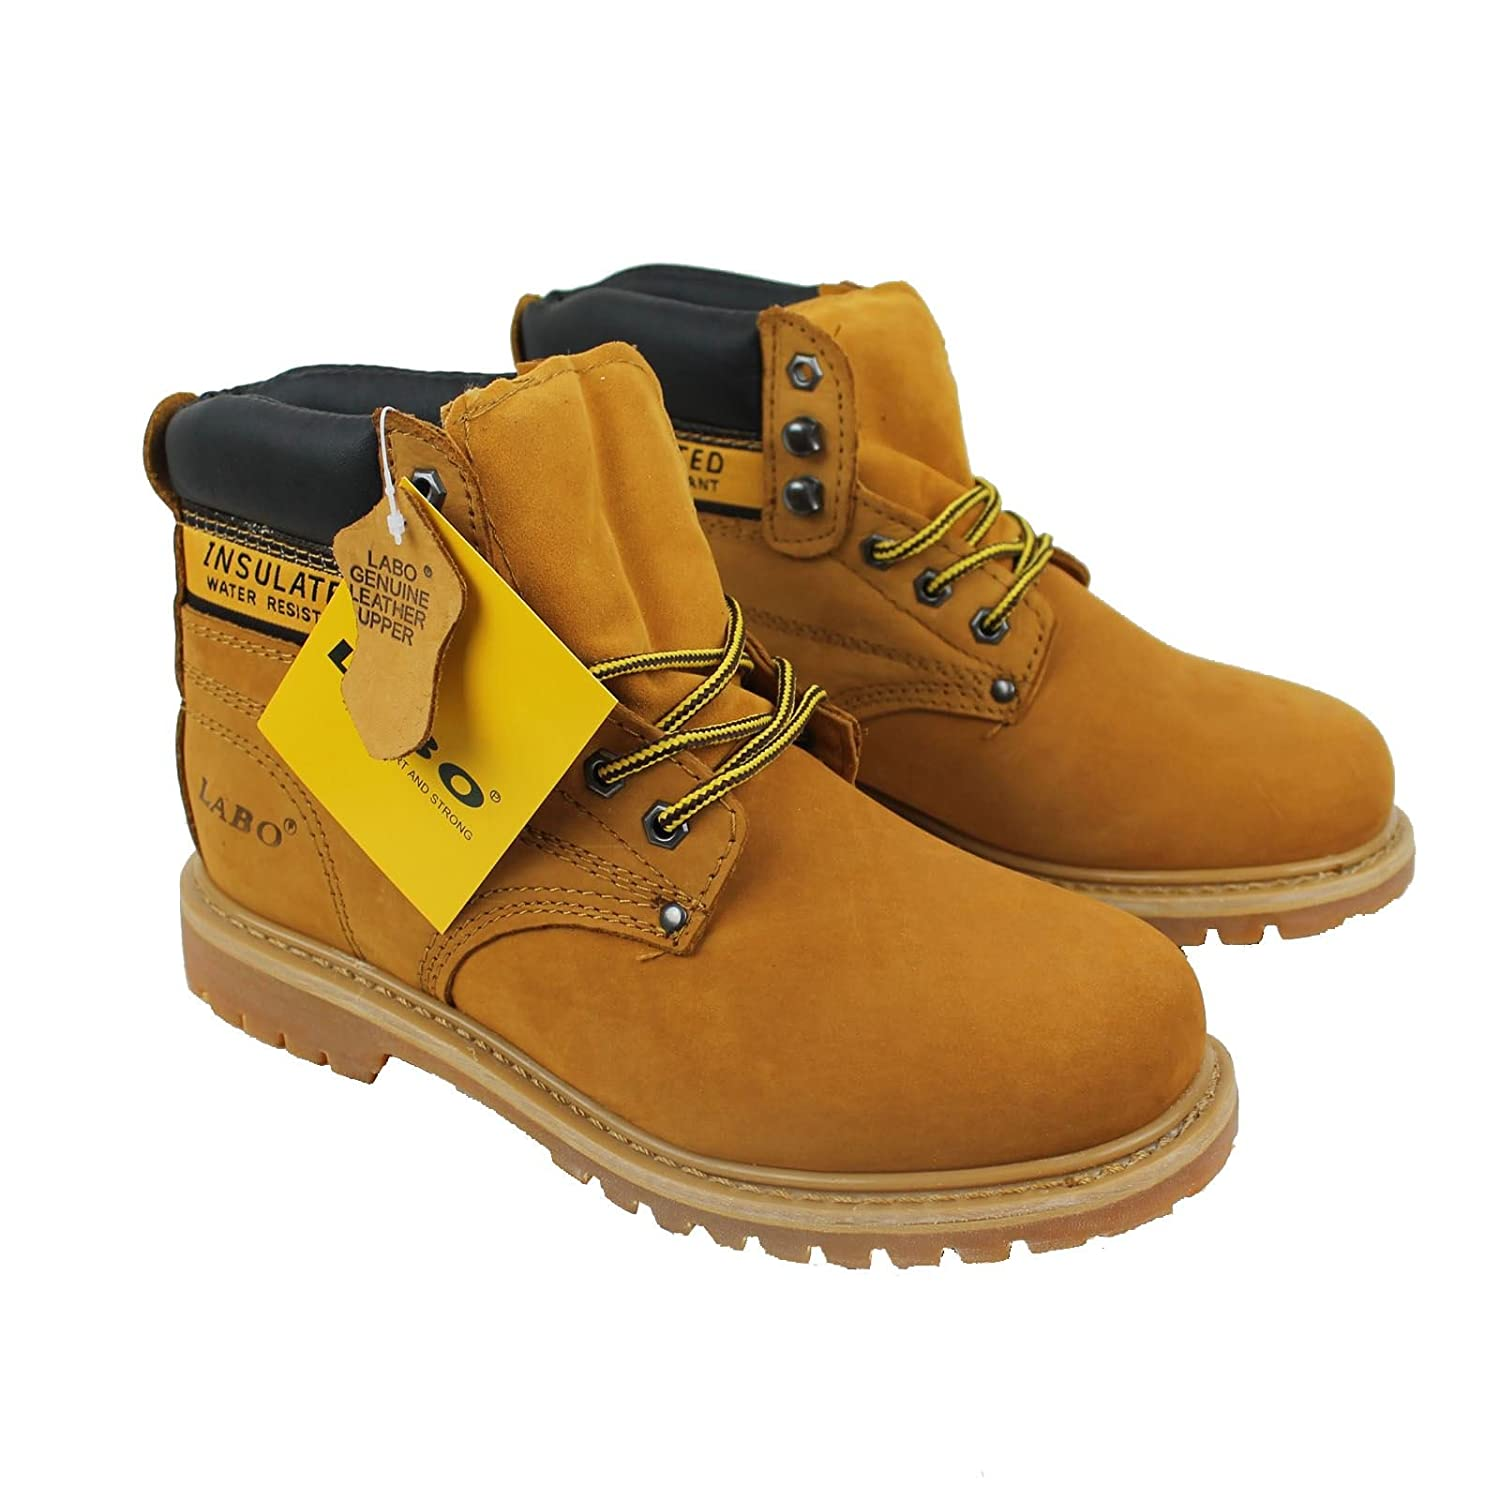 e952c89f0ff LABO Men's Genuine Leather Work Boot in 5 Style by CITISHOESNYC